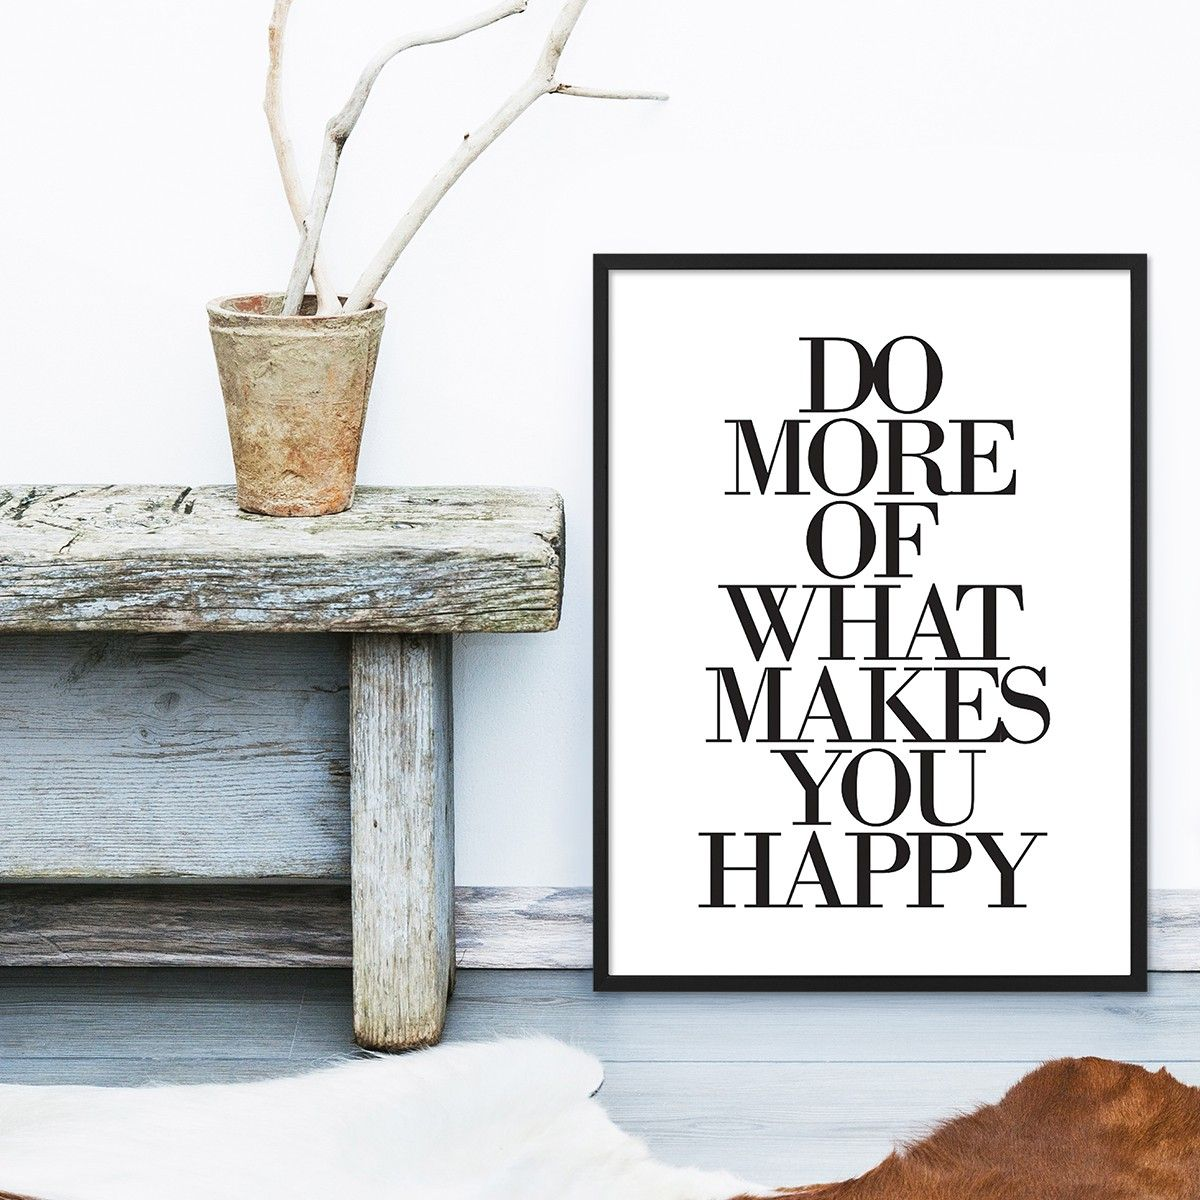 Design Poster 39 Do More Of What Makes You Happy 39 30x40 Cm